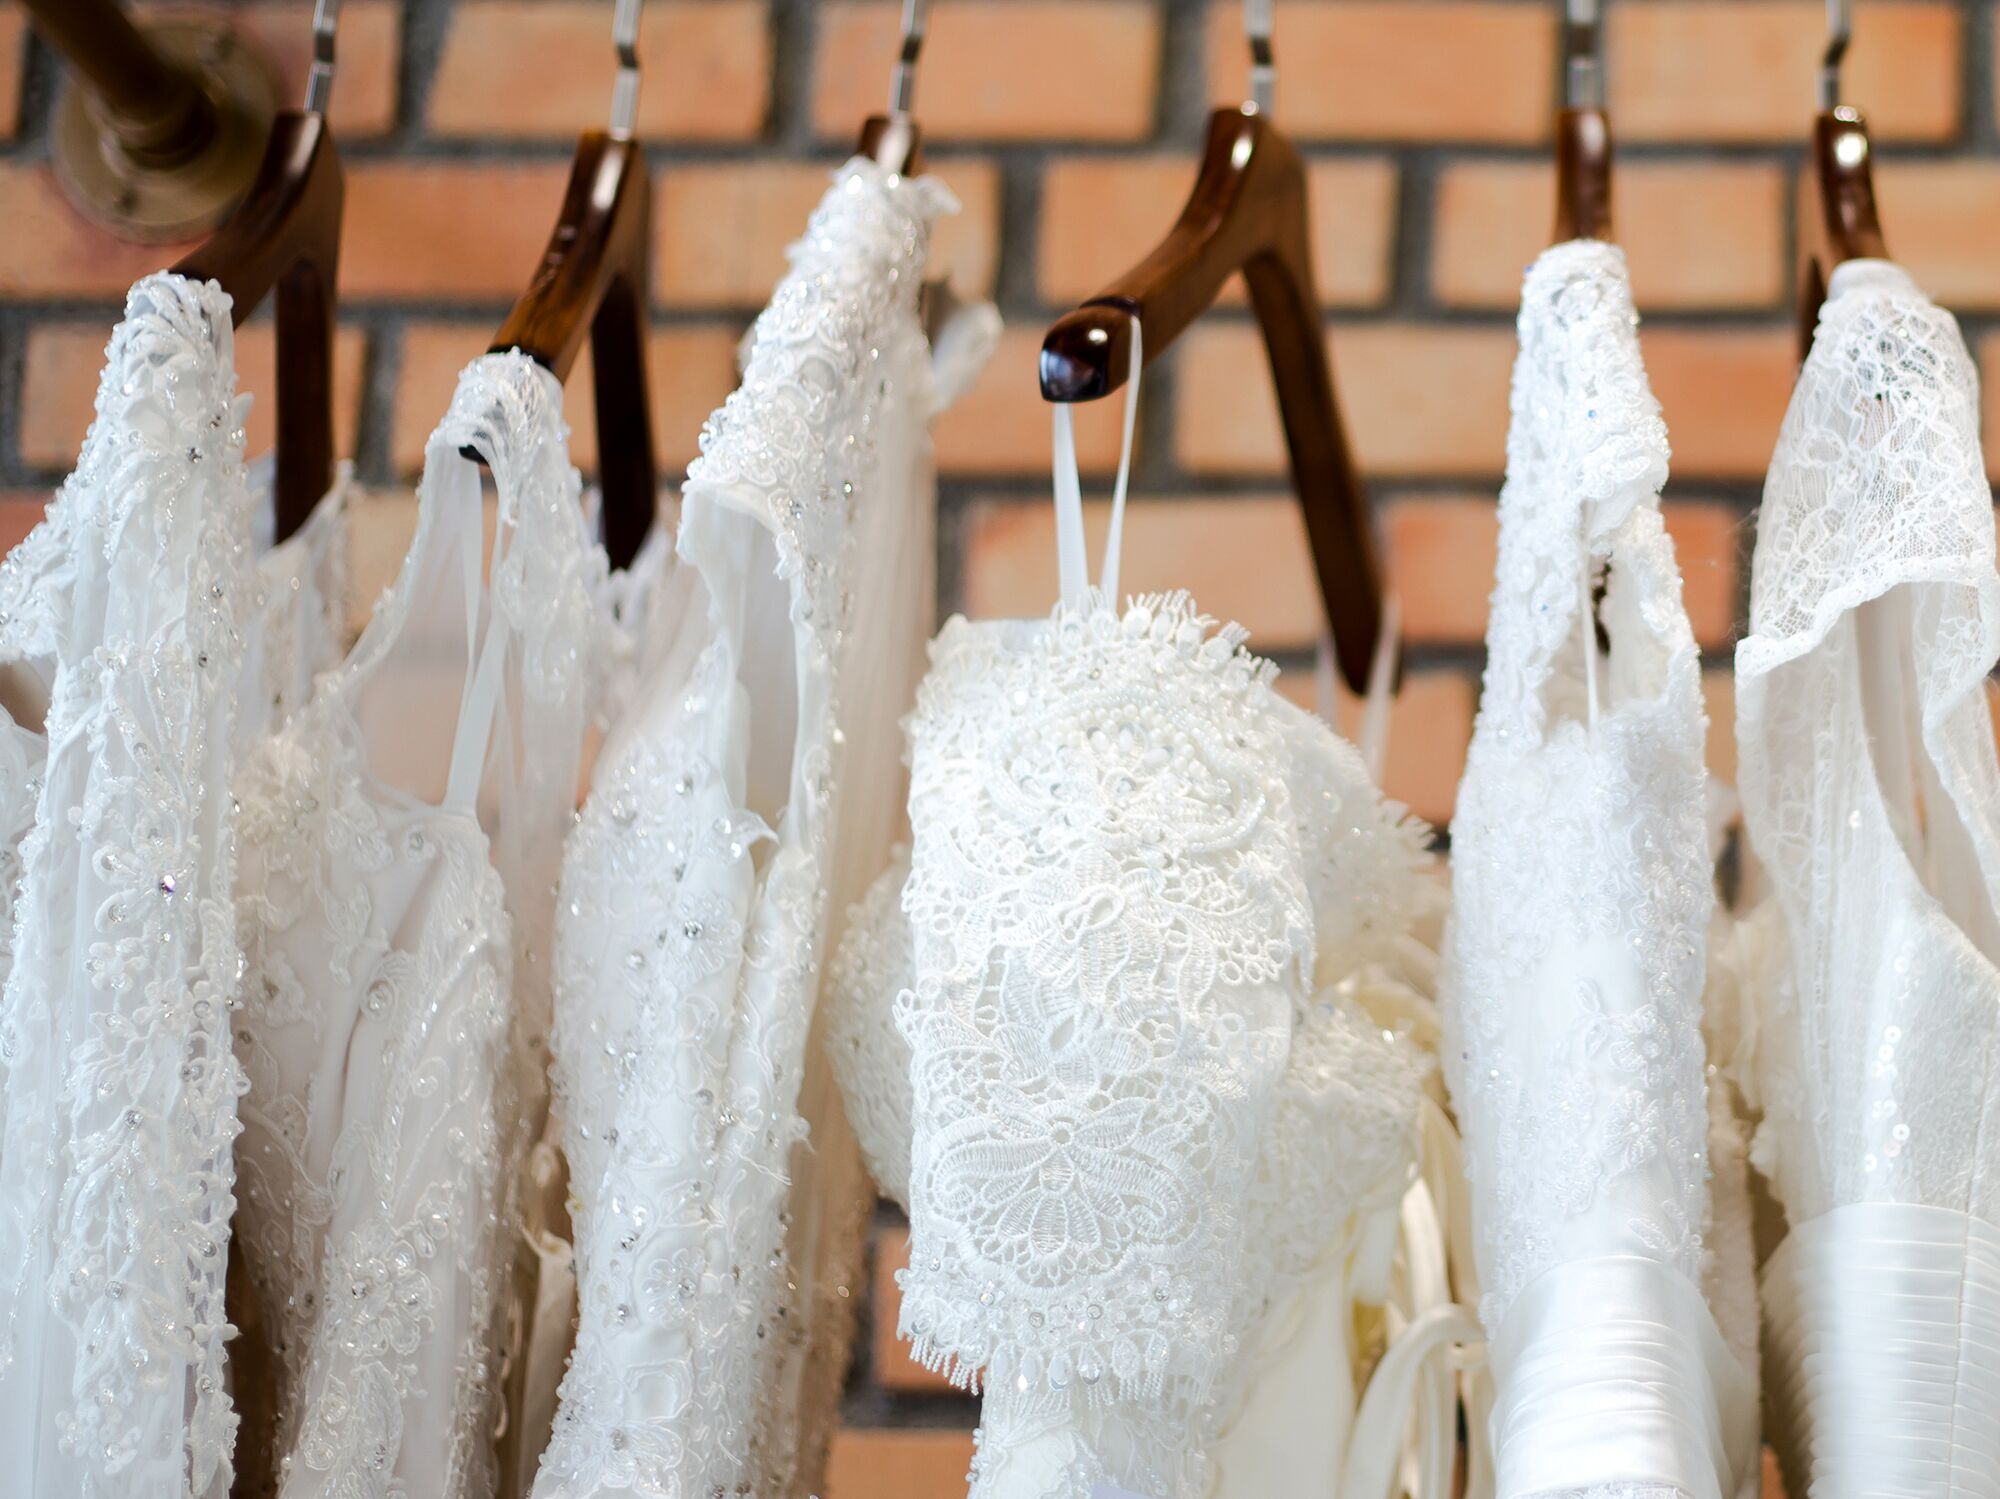 Used Wedding Dresses Where To Buy And Sell Online